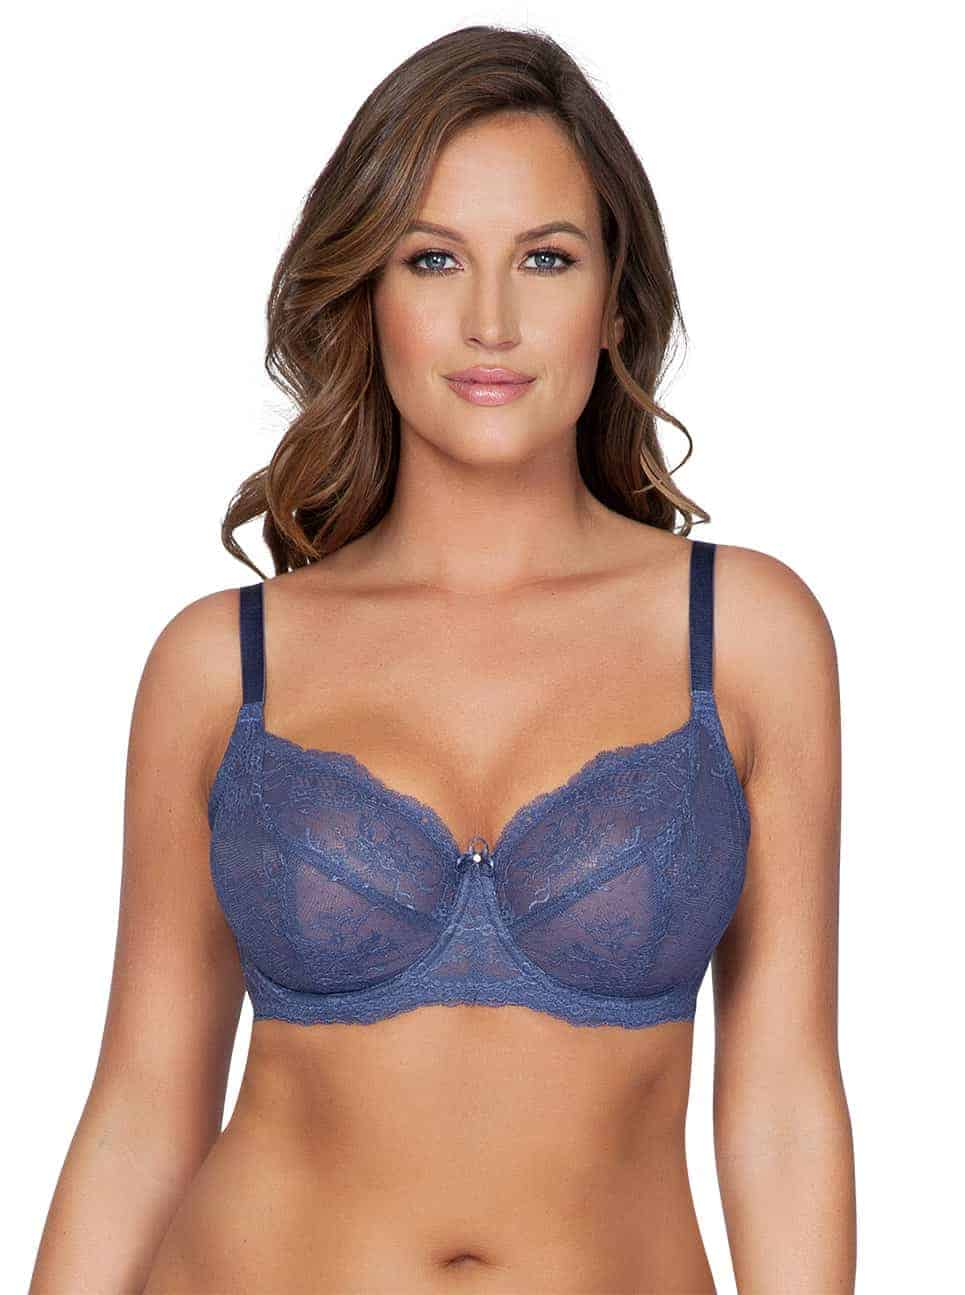 Sandrine P5352 UnlinedWire FrenchBlue Front - Sandrine Unlined Wire Bra - French Blue - P5352